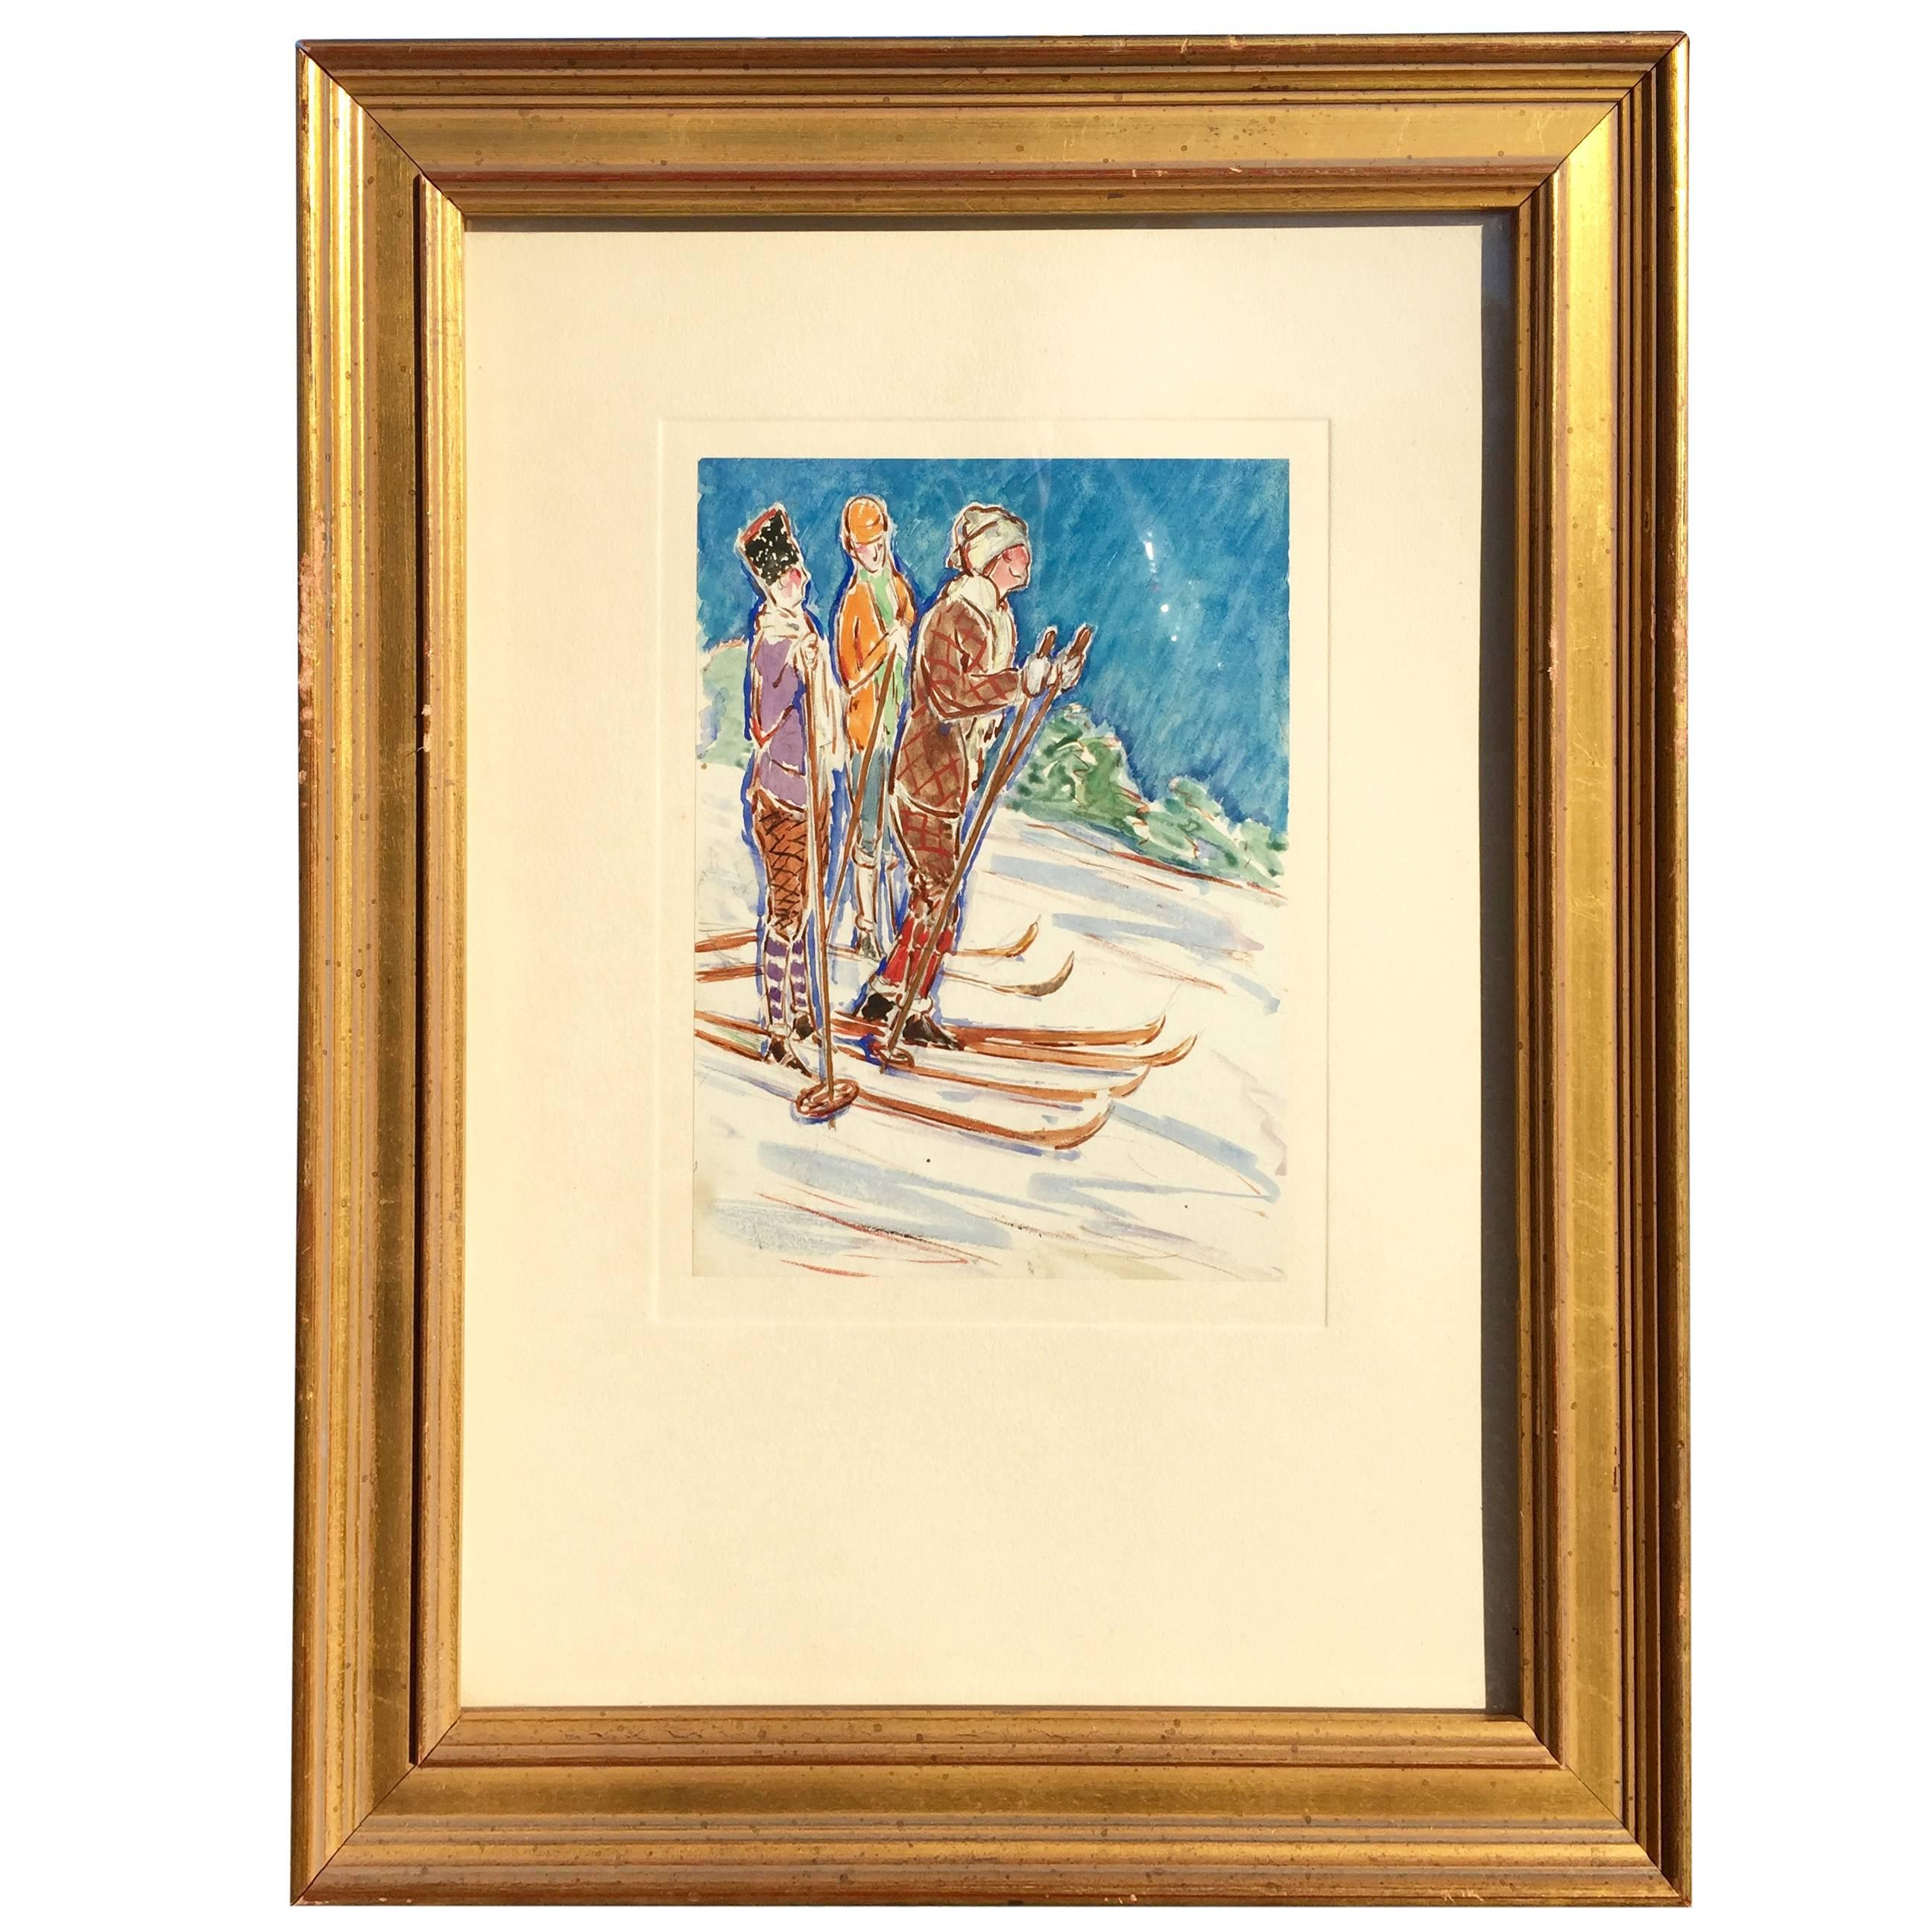 Gouache of Skiers Early 20th Century by Rufus Dryer